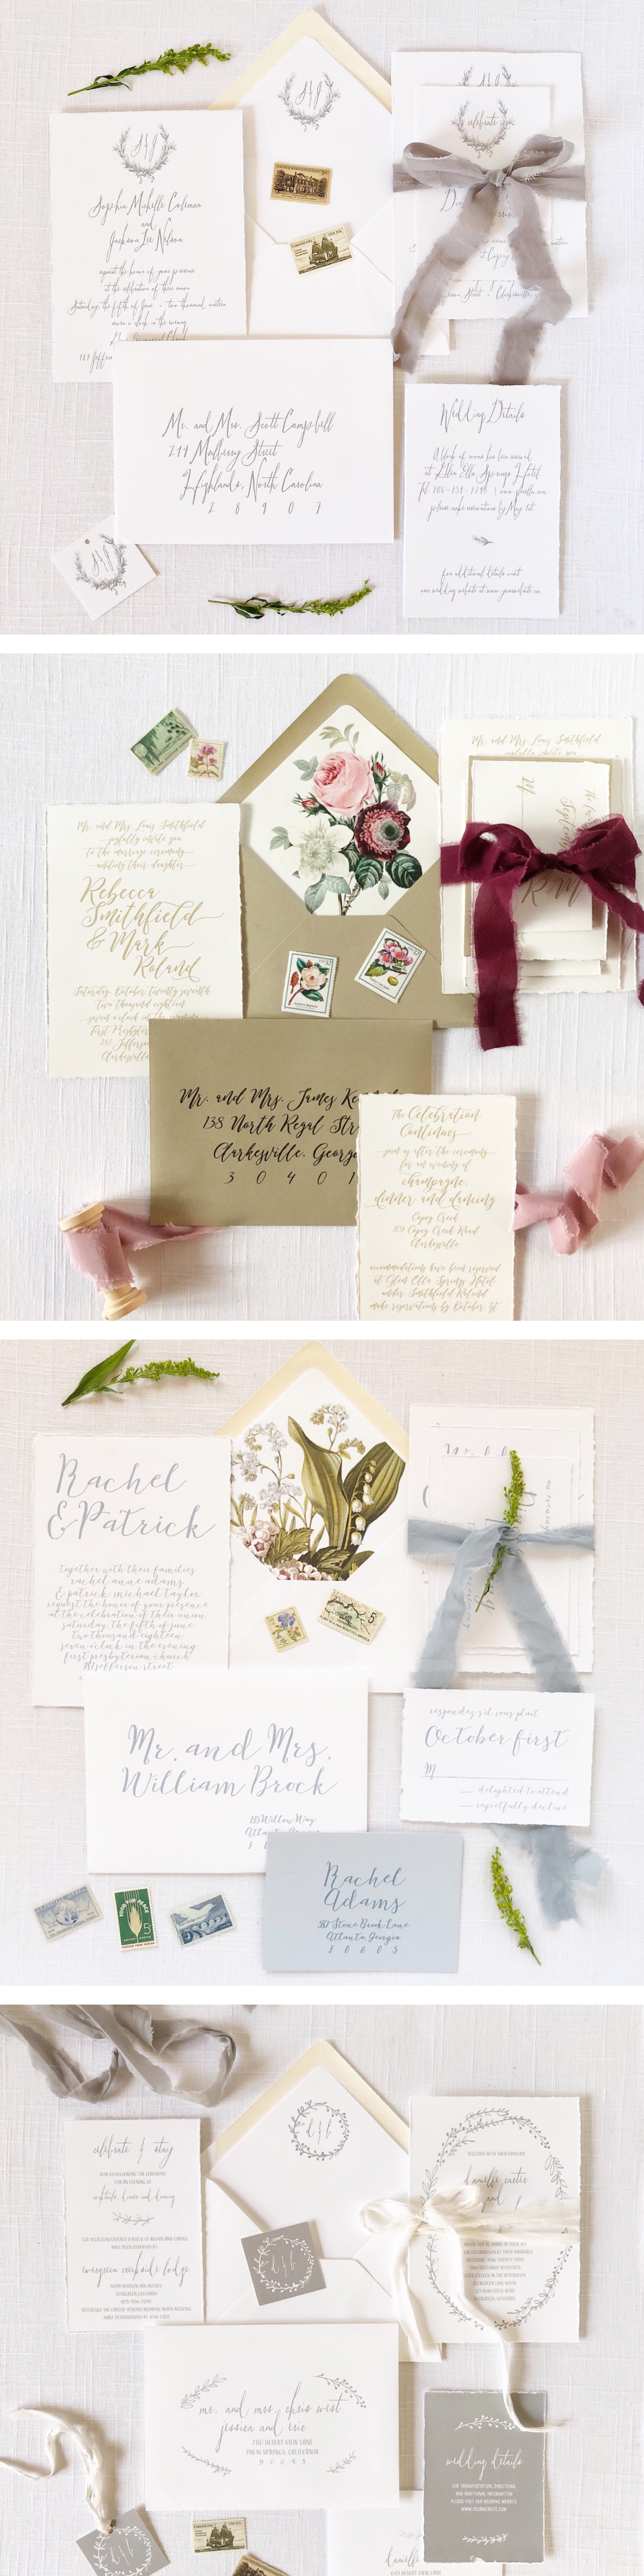 Cotton cardstock, handtorn edges, muted colors - these invitations ...